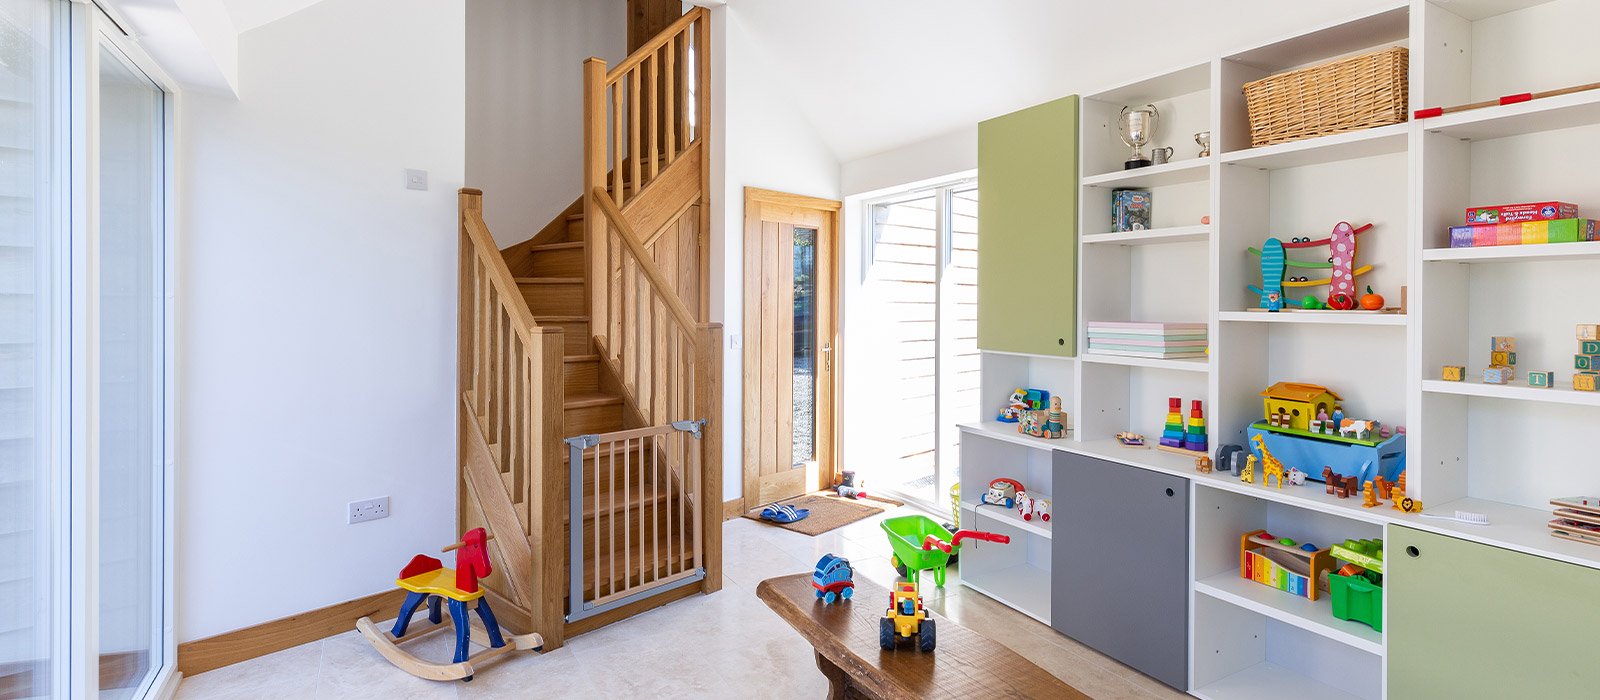 gyd-architecture   playroom link